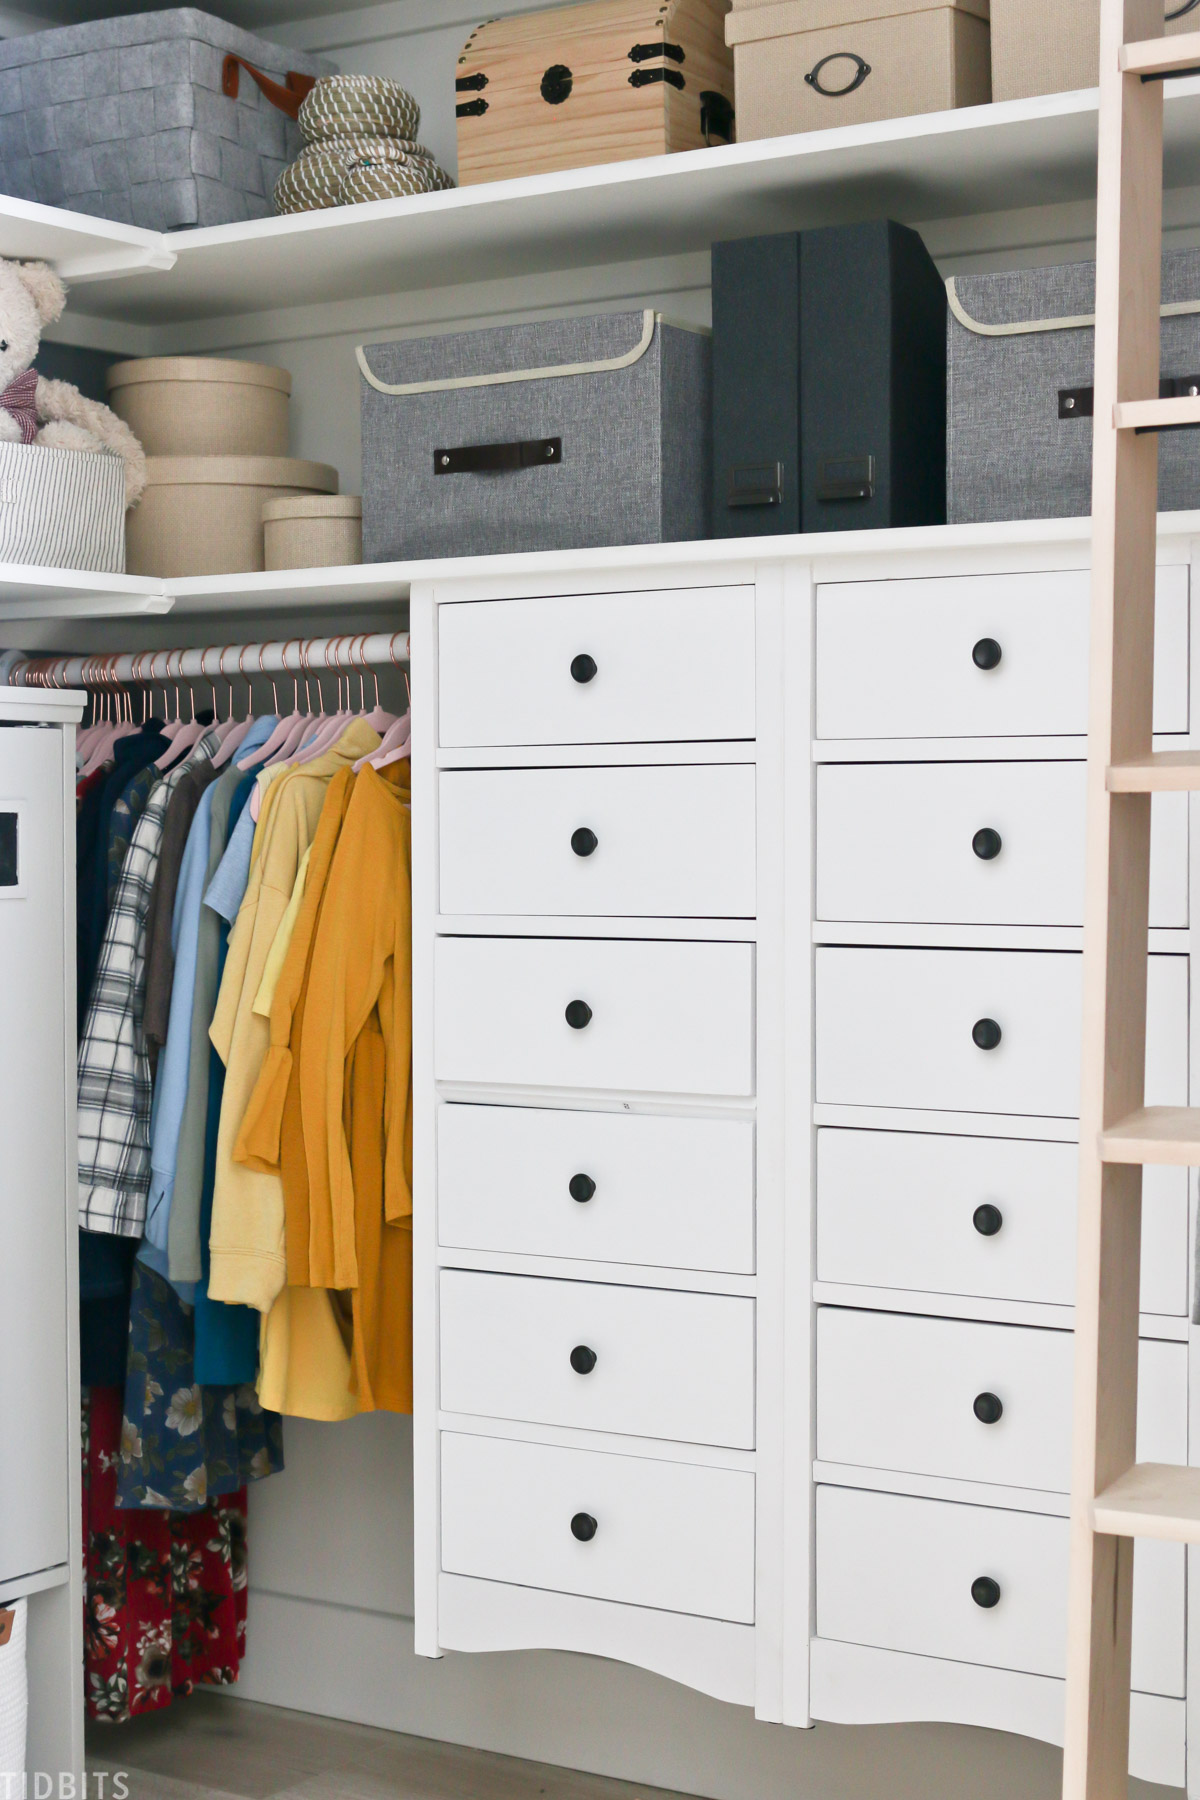 two tall white dressers in a walk in closet with clothes hanging next to them